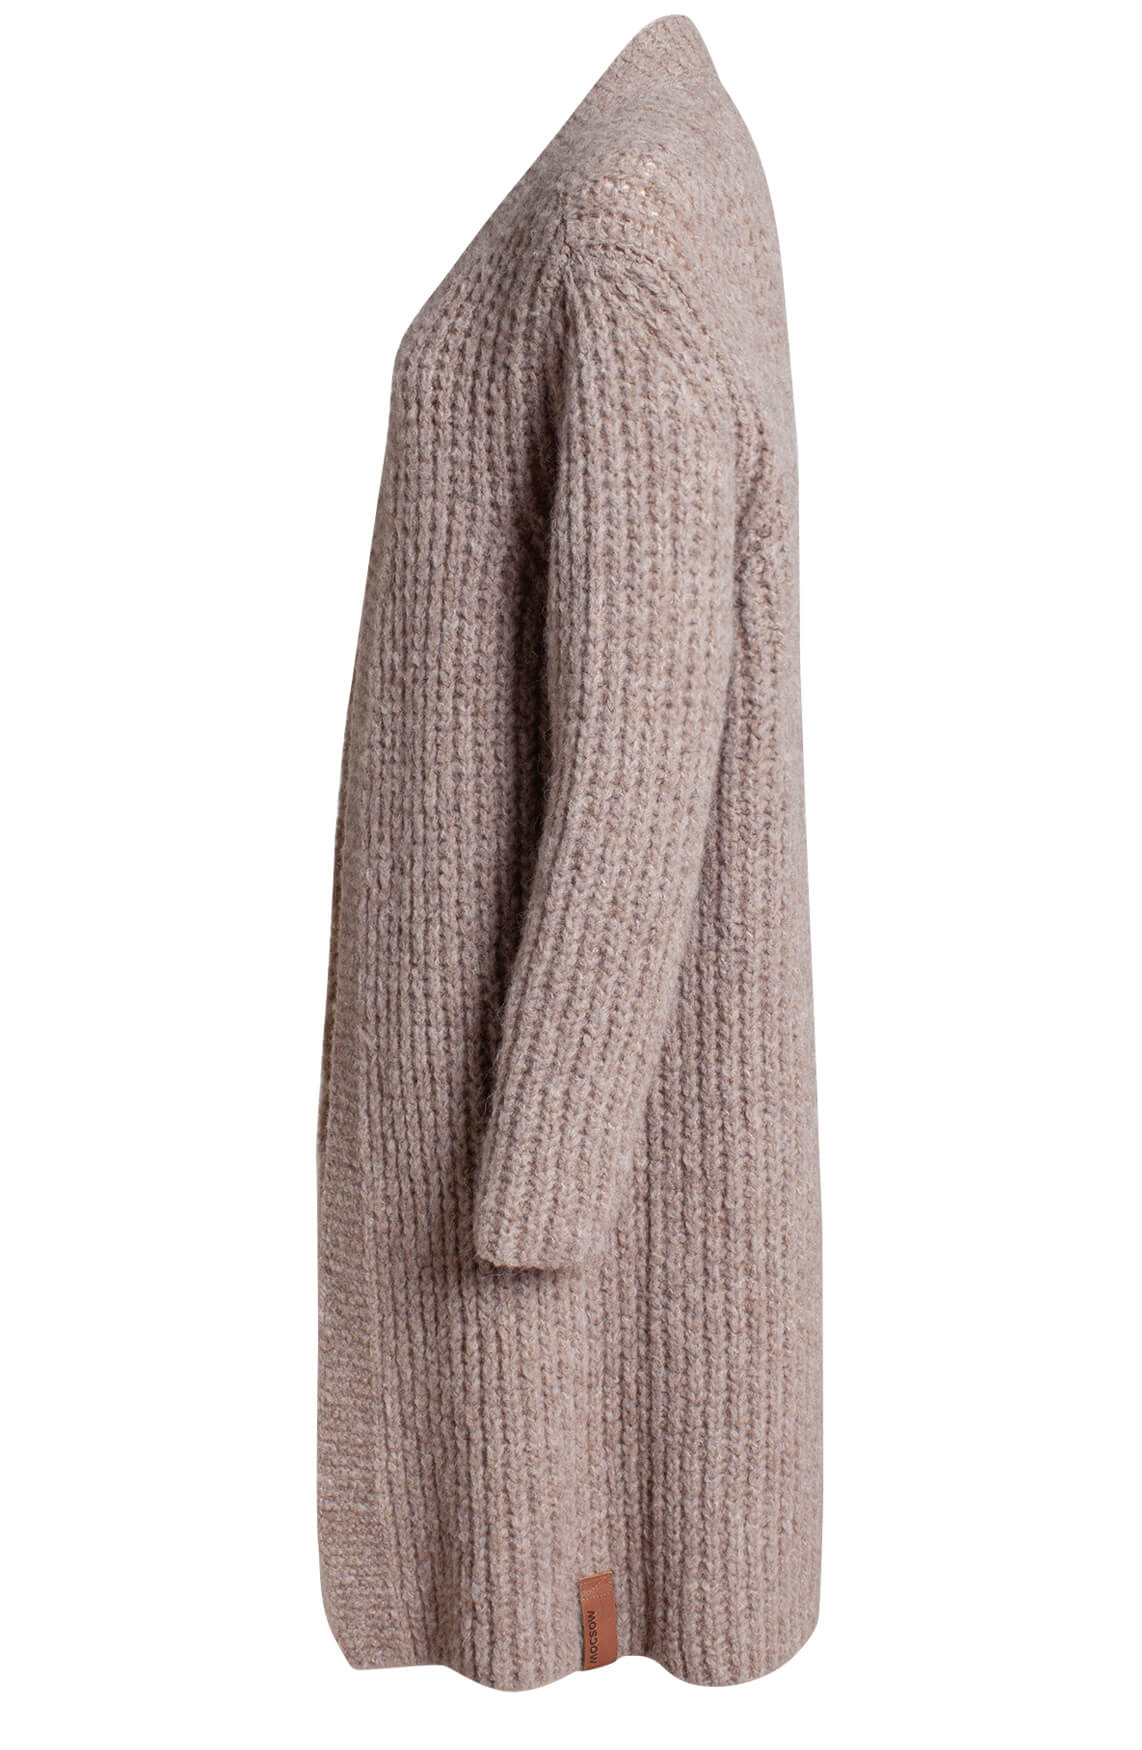 Moscow Dames Milyo knitted cardigan Bruin